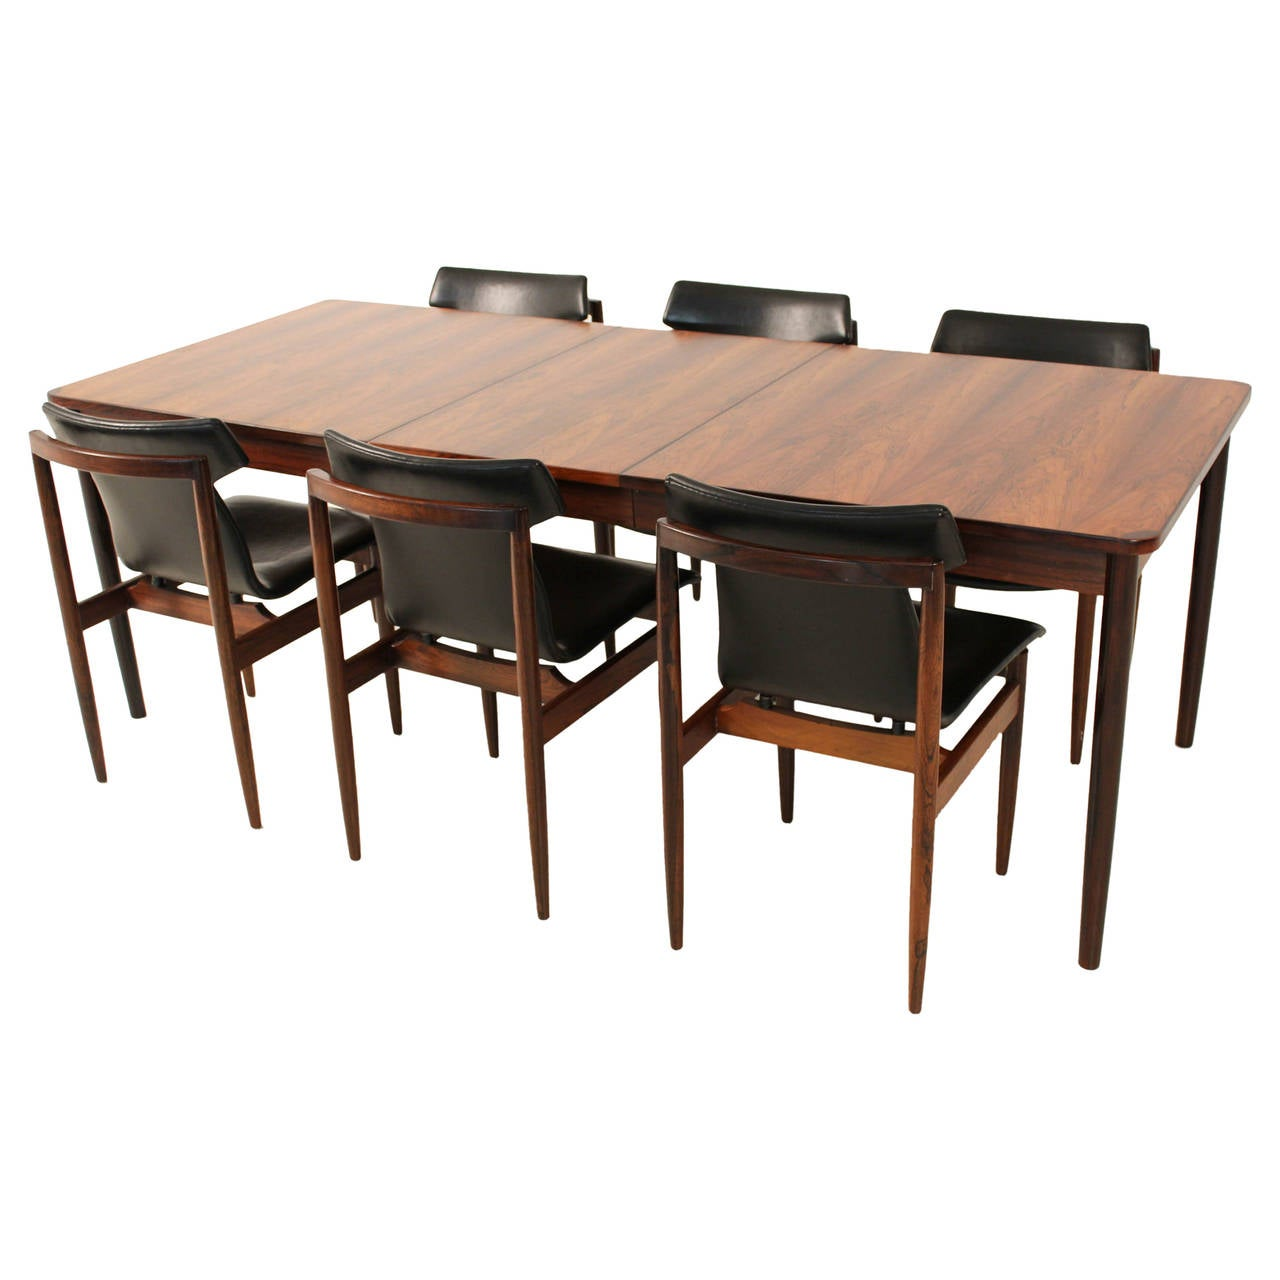 Mid century modern dining table by fristho at 1stdibs for Mid century modern dining table